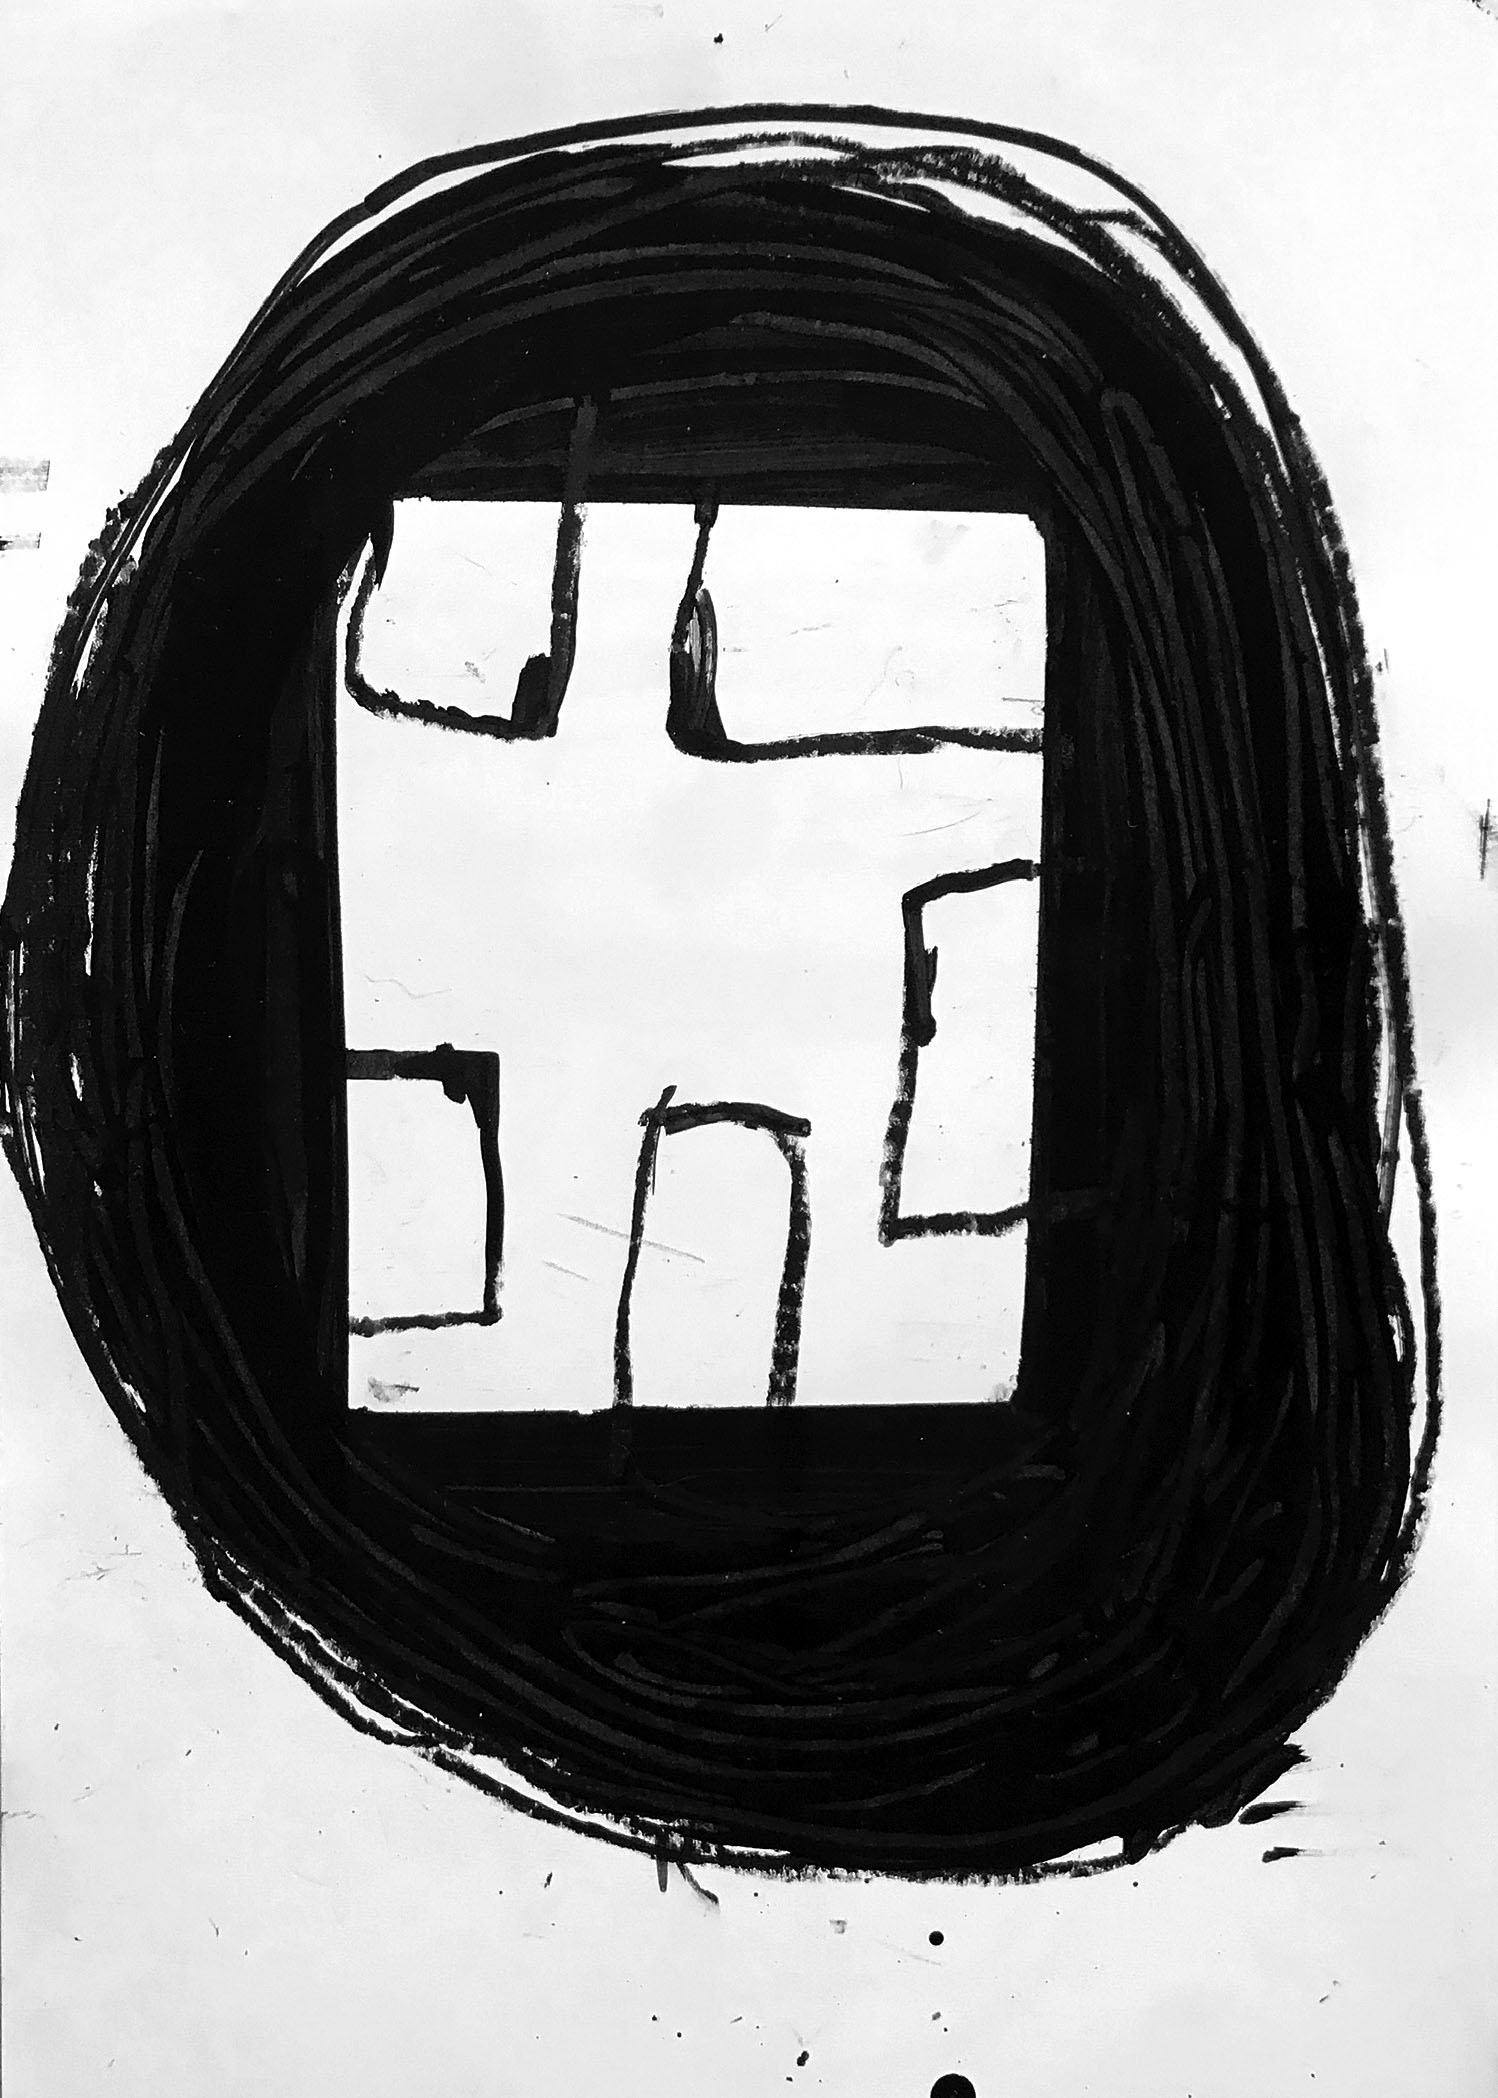 drawings, abstract, graphical, minimalistic, bodies, patterns, people, black, acrylic, crayons, abstract-forms, black-and-white, contemporary-art, danish, decorative, design, interior, interior-design, modern, modern-art, nordic, scandinavien, Buy original high quality art. Paintings, drawings, limited edition prints & posters by talented artists.